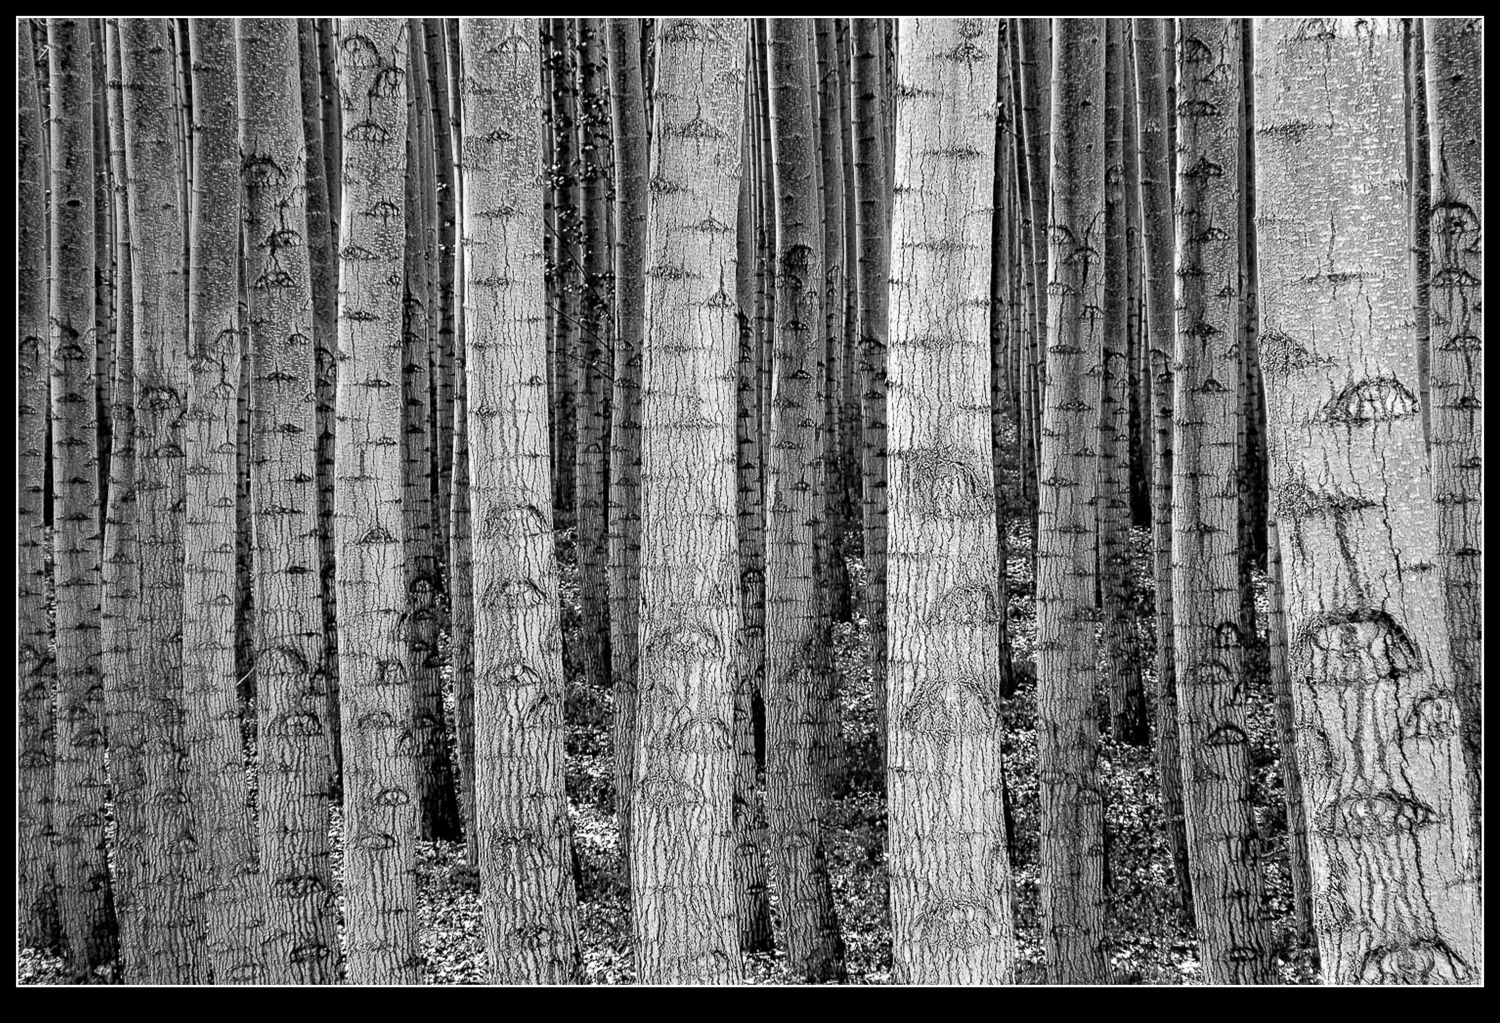 Focus-stacked forest